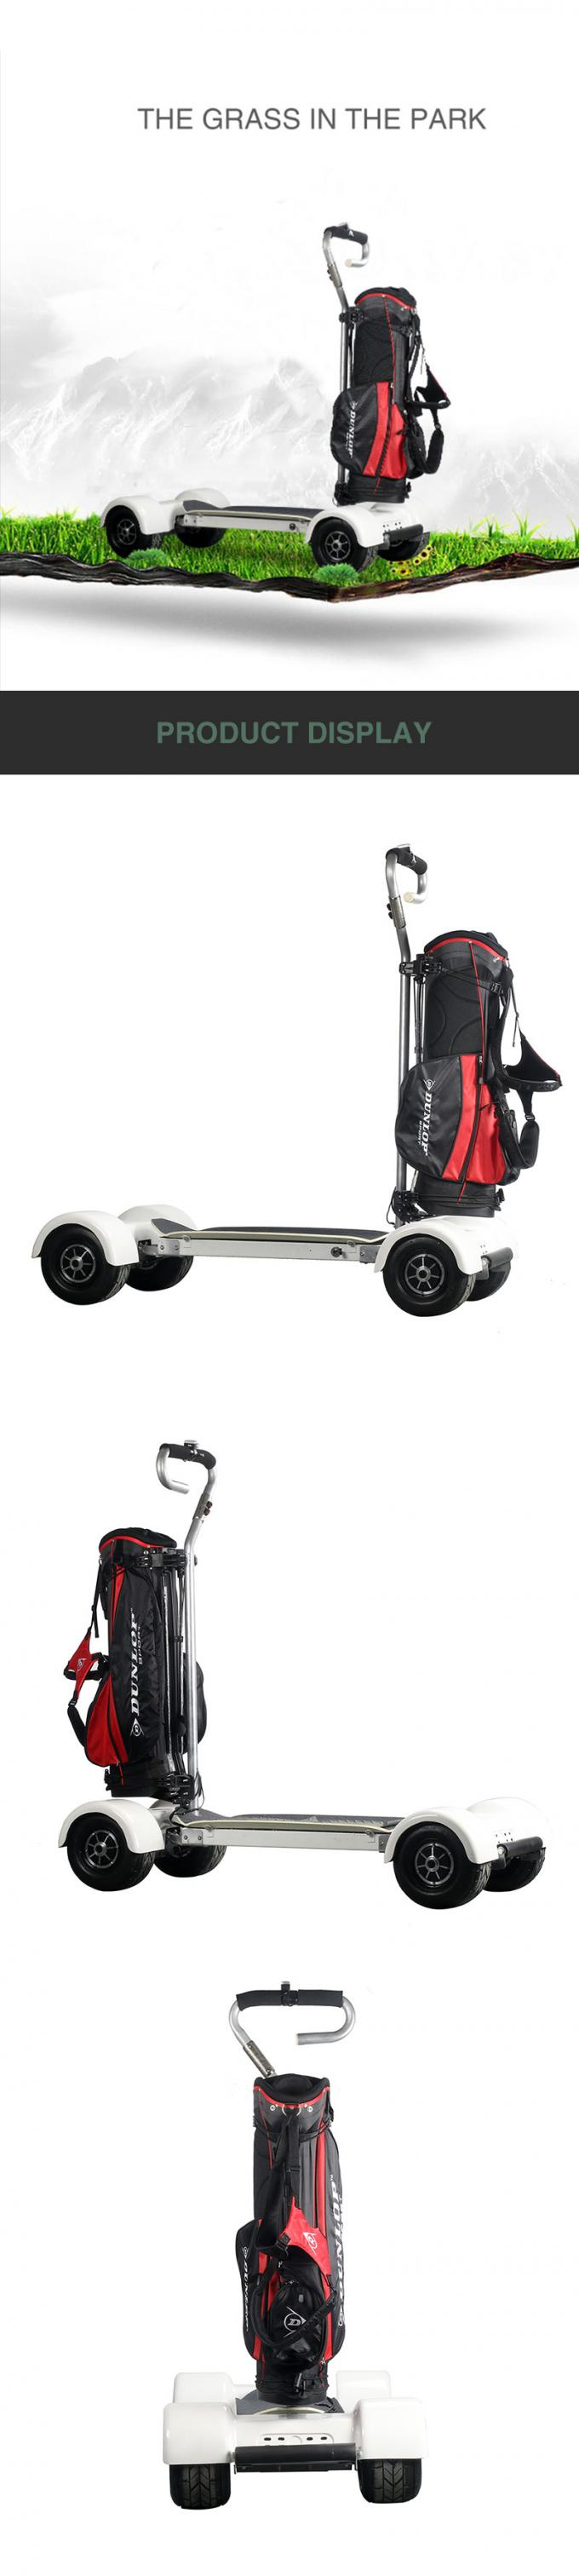 Golf 4 Wheel Skateboard Folding Electric Scooter 10.5 Inch Tire For Outdoor Tour